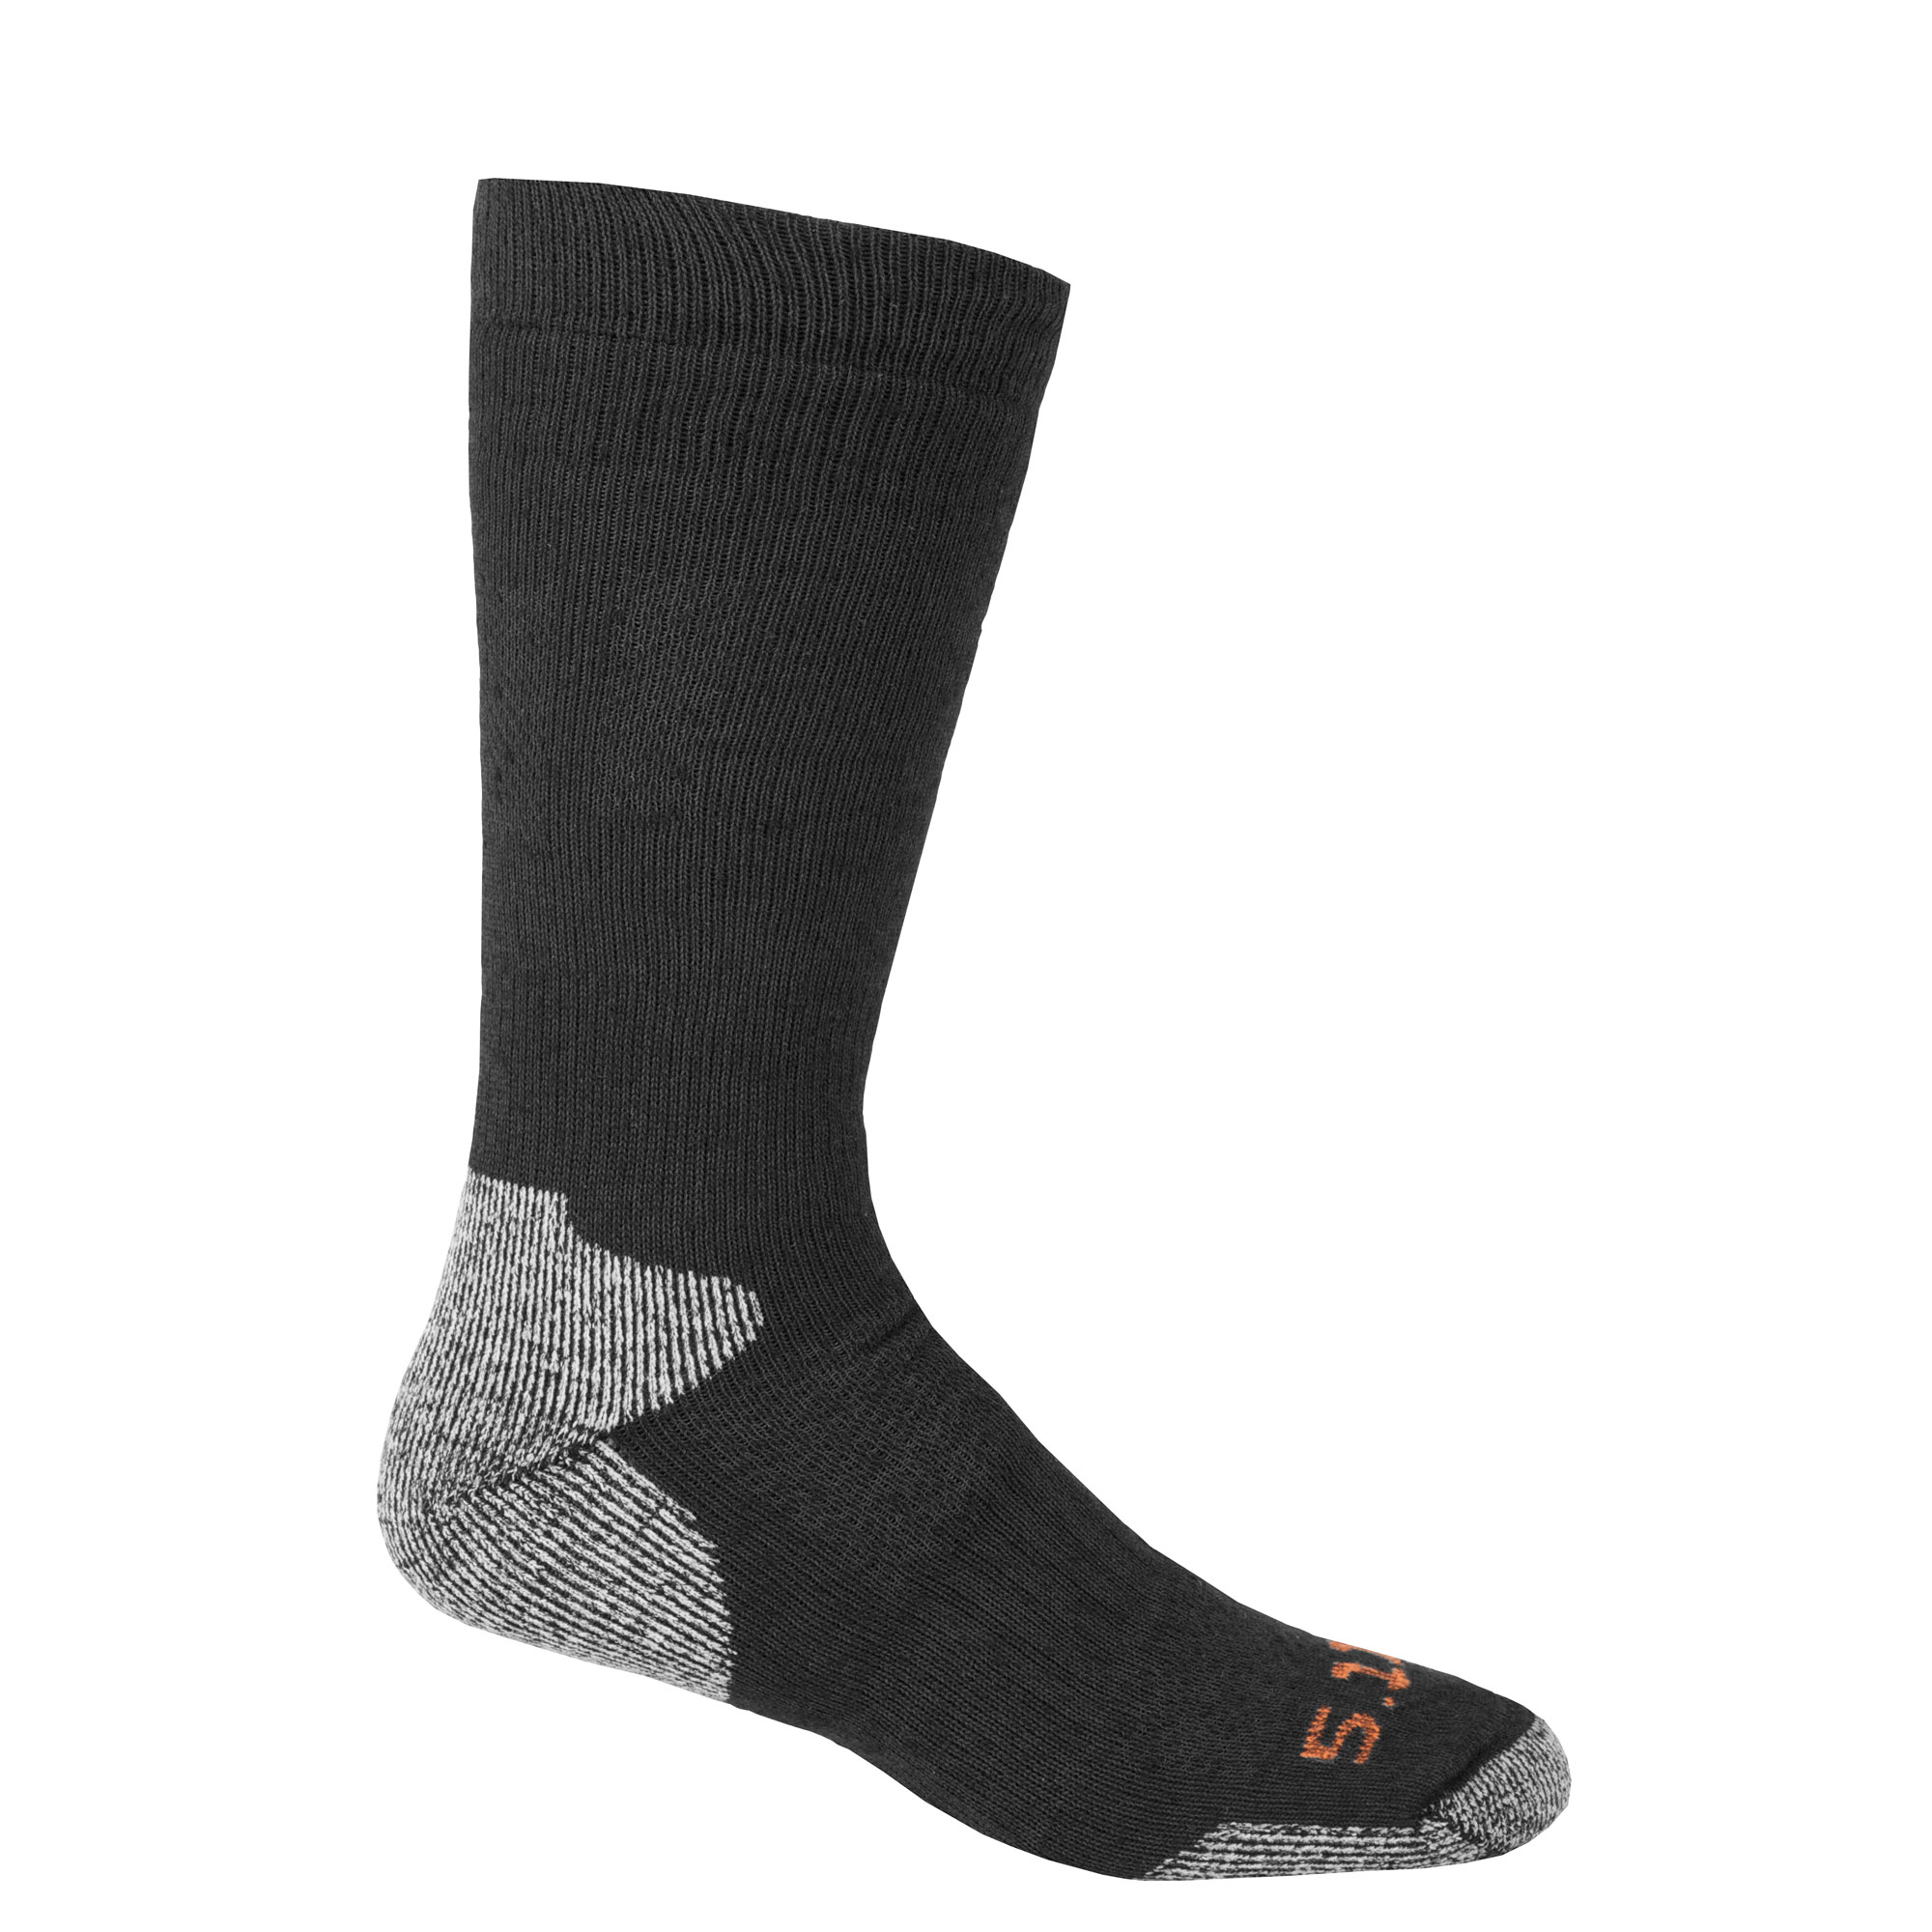 5.11 Cold Weather OTC Sock - Black [Clearance Size S/M]